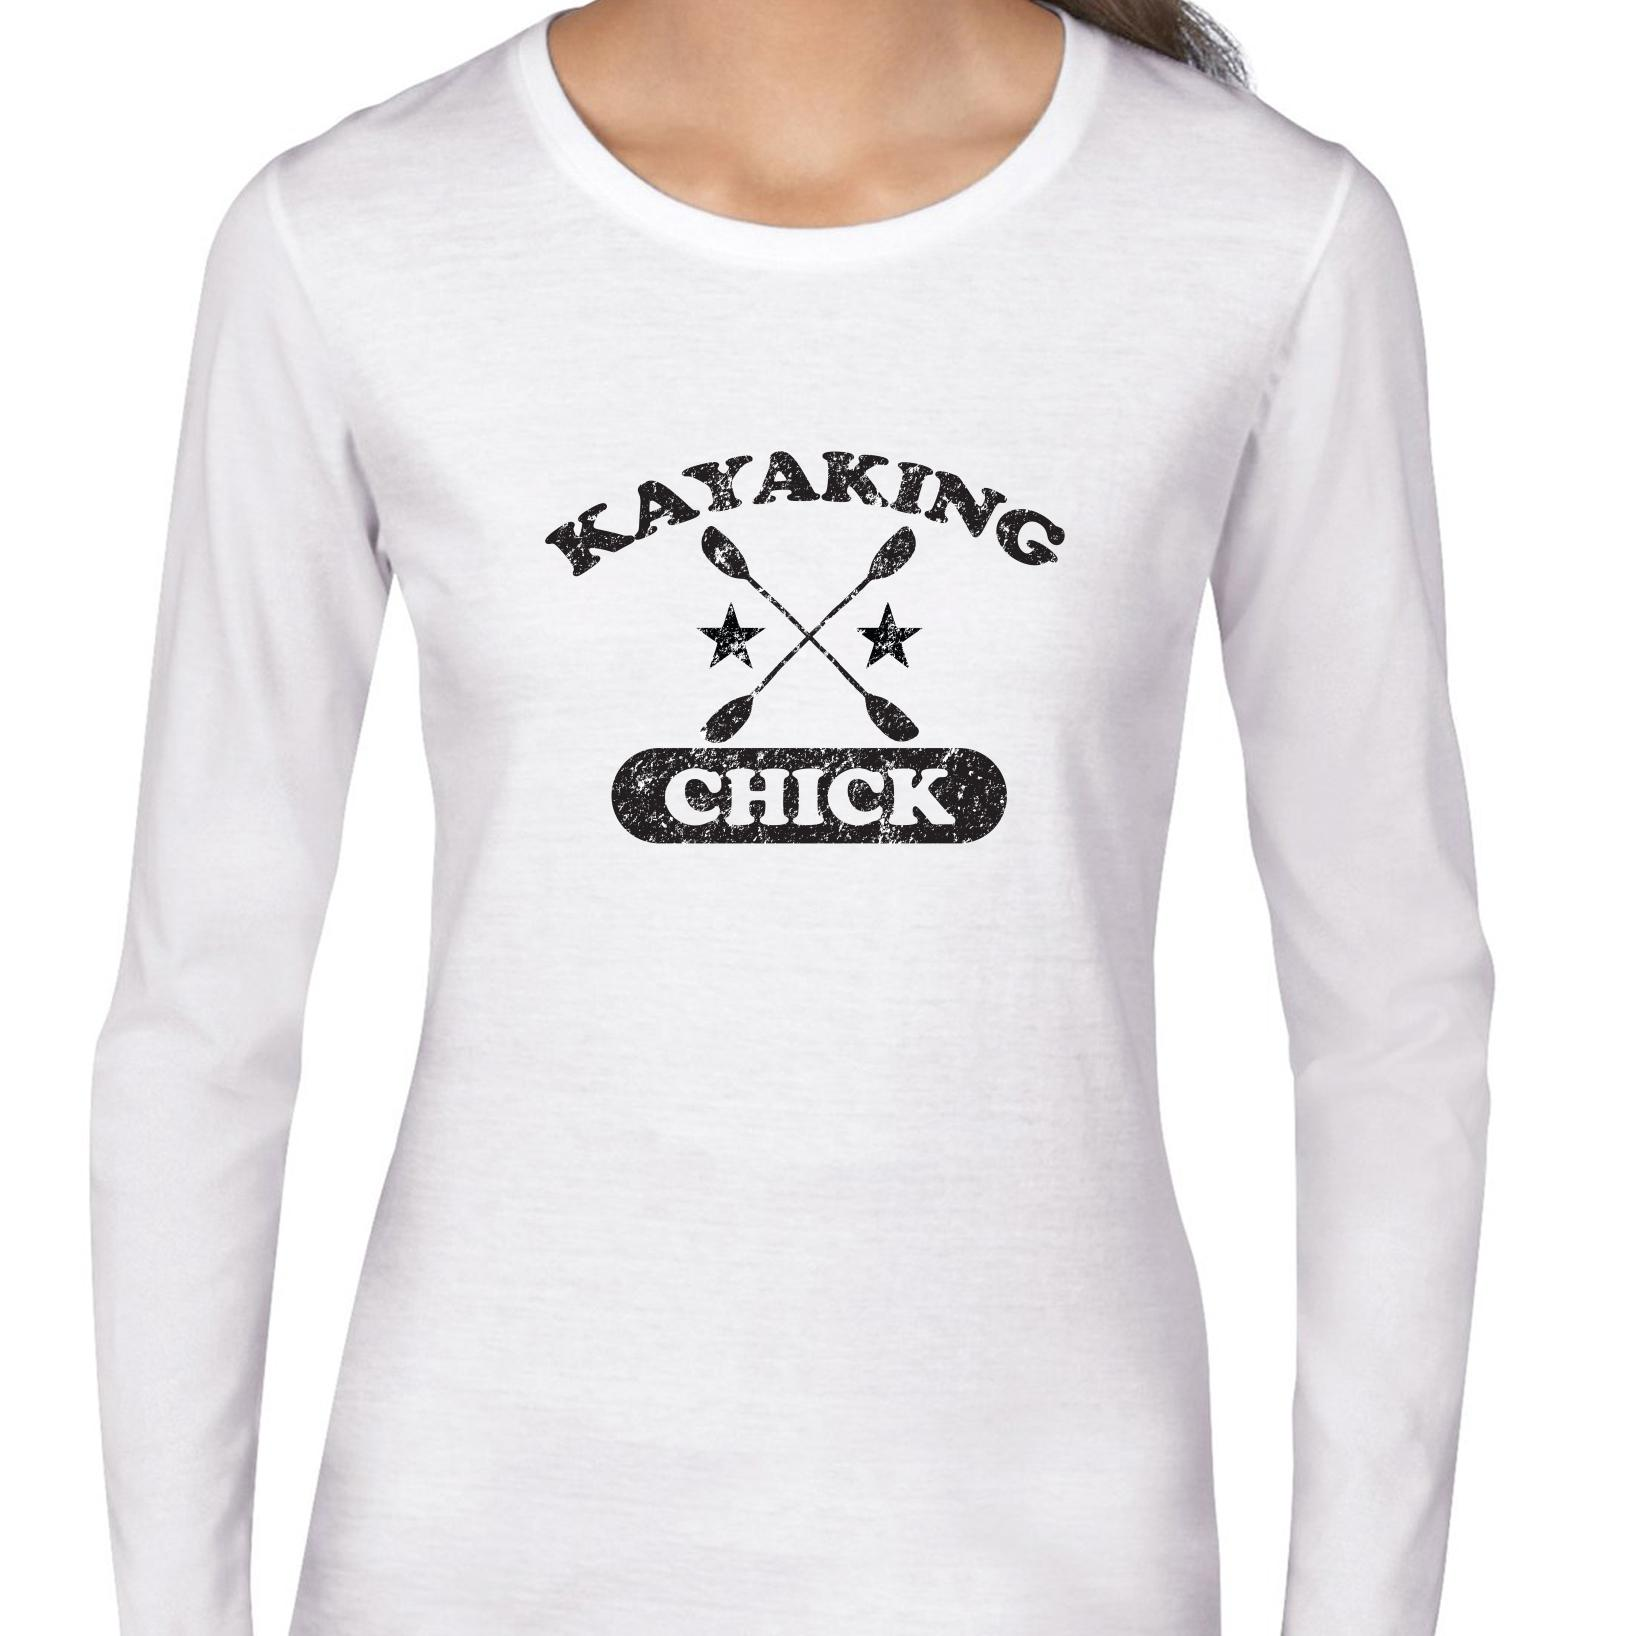 Kayaking Chick With Crossed Paddles Graphic Women's Long Sleeve T-Shirt